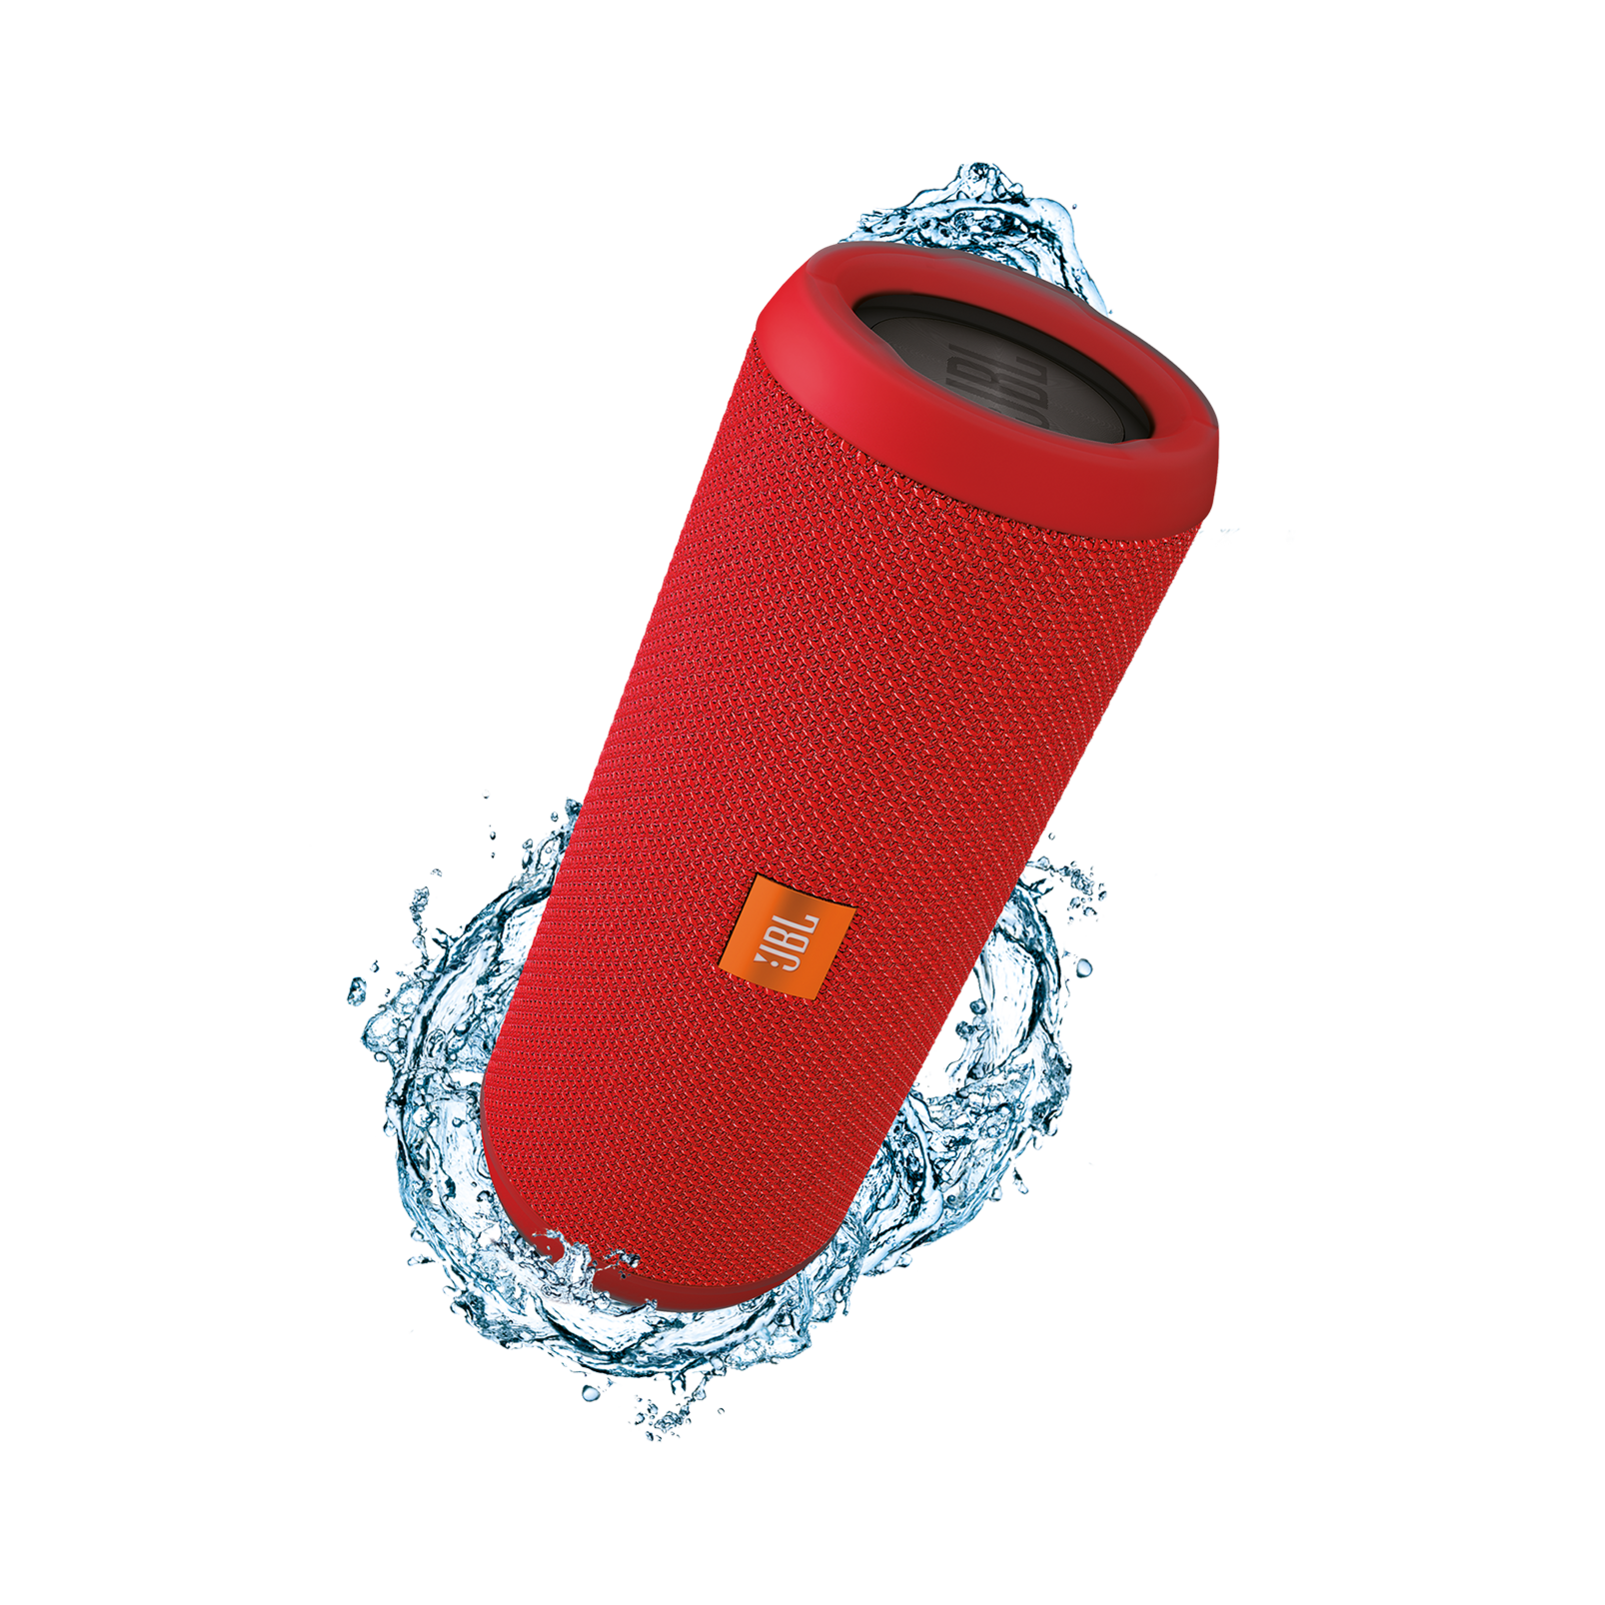 JBL Flip 3 - Red - Splashproof portable Bluetooth speaker with powerful sound and speakerphone technology - Hero